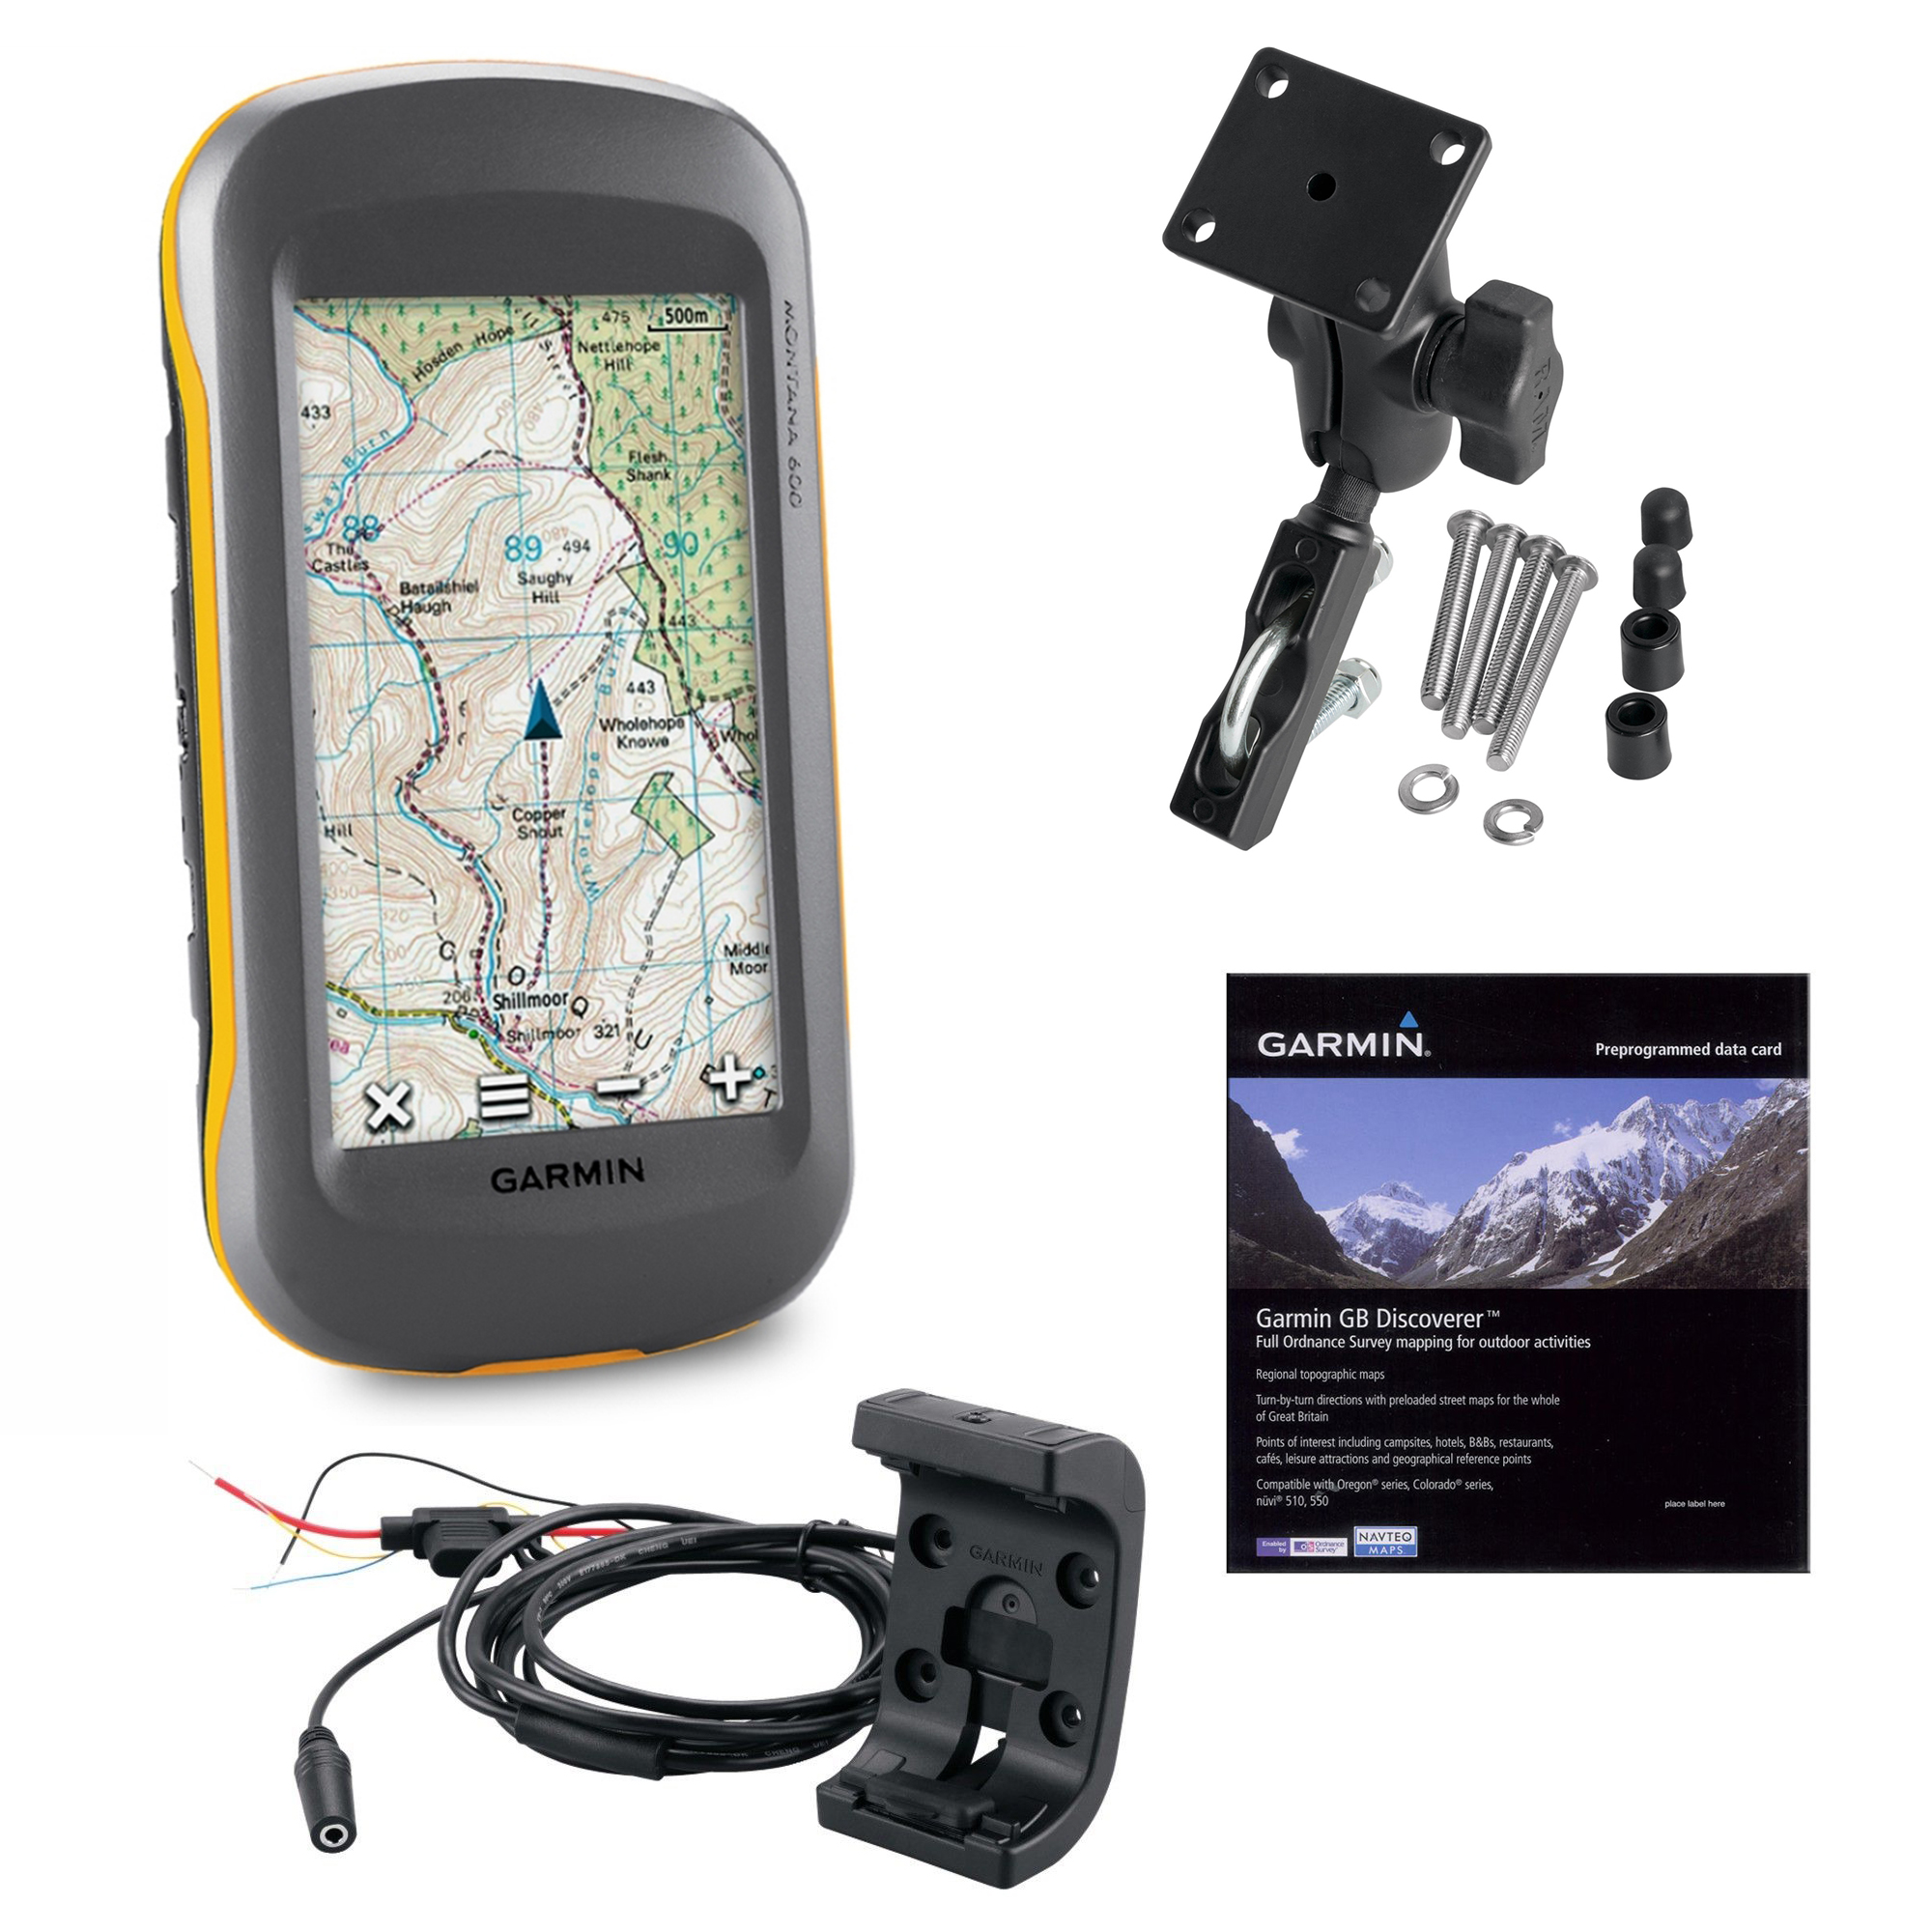 garmin montana 610 gps moto bundle motorcycle motorcross quad bike outdoor kit sustuu. Black Bedroom Furniture Sets. Home Design Ideas